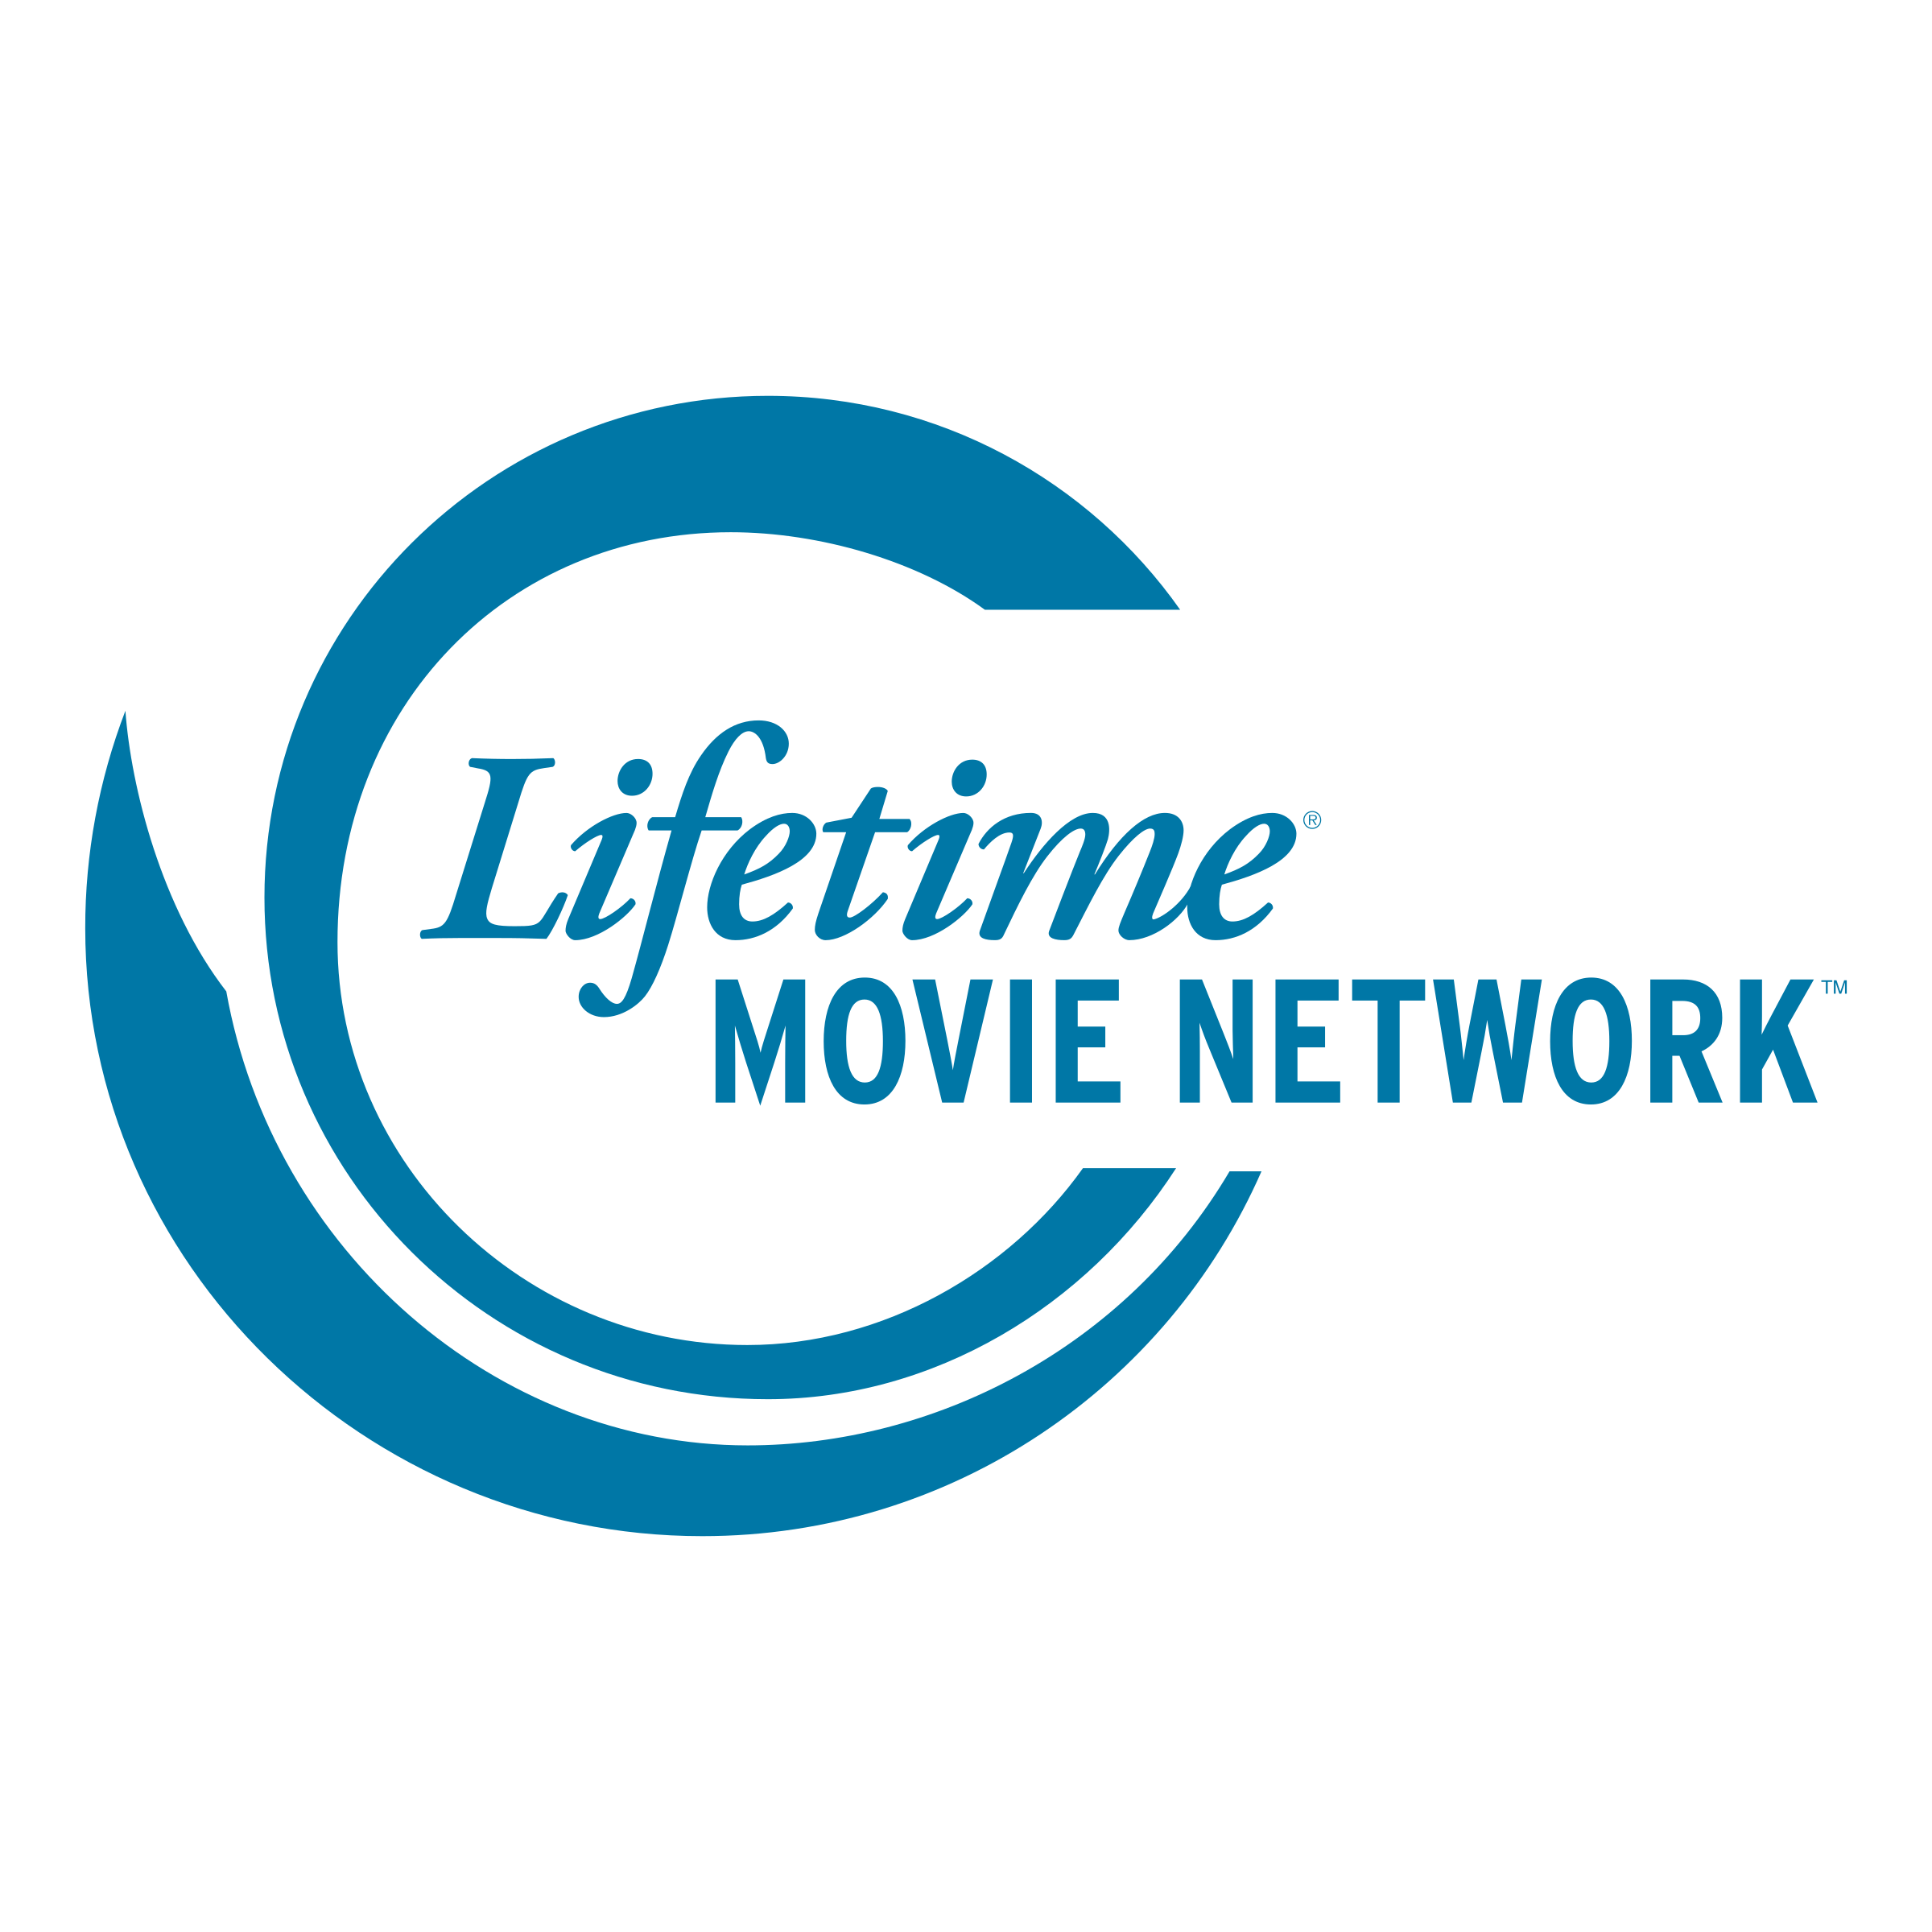 Movies vector logo. Lifetime network png transparent